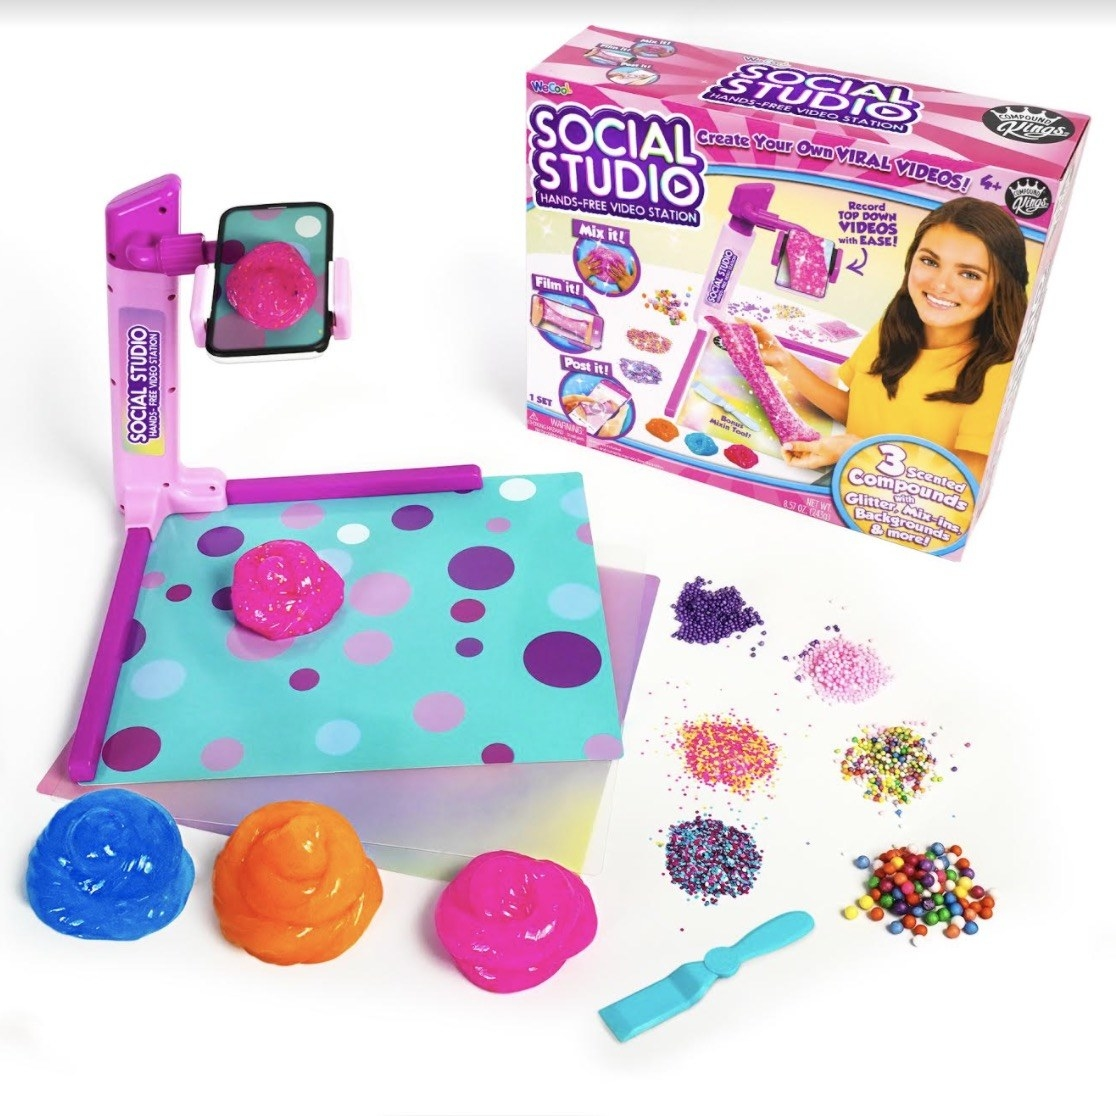 a set that has a tool to hold a phone and film the slime making process